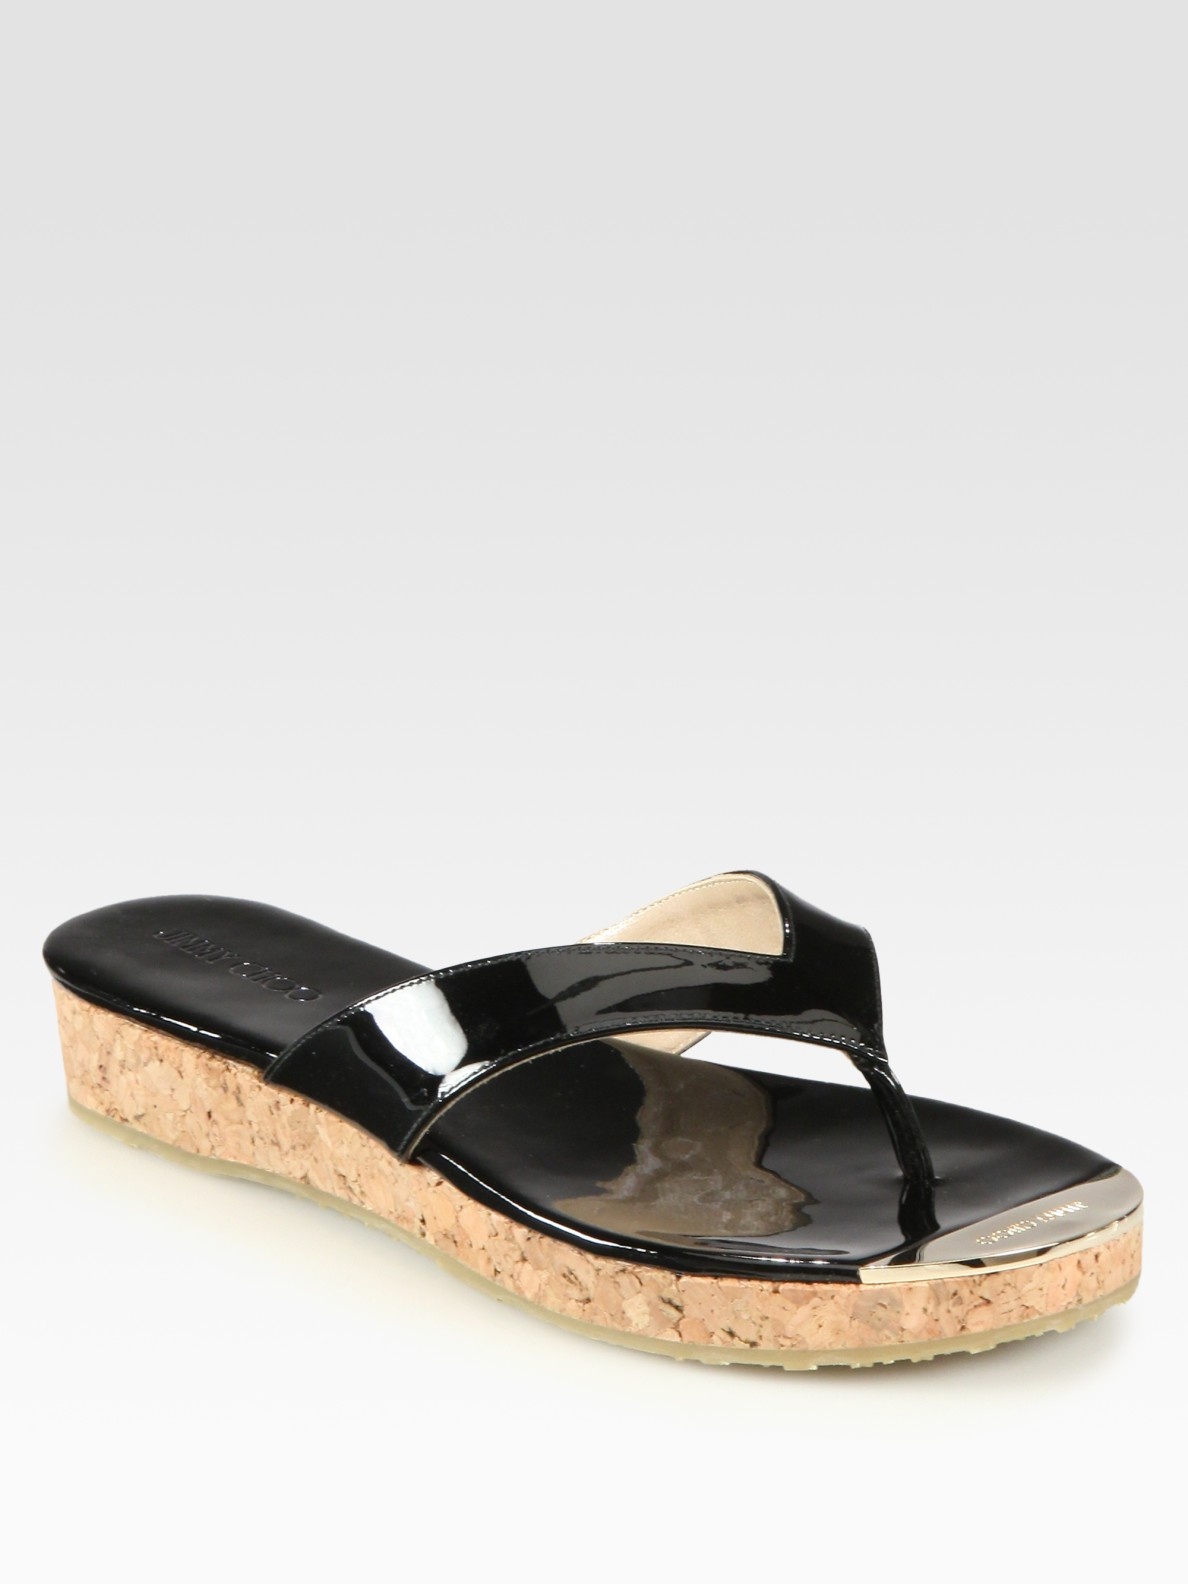 844560f9ef7d Lyst - Jimmy Choo Pence Patent Leather Cork Wedge Sandals in Black